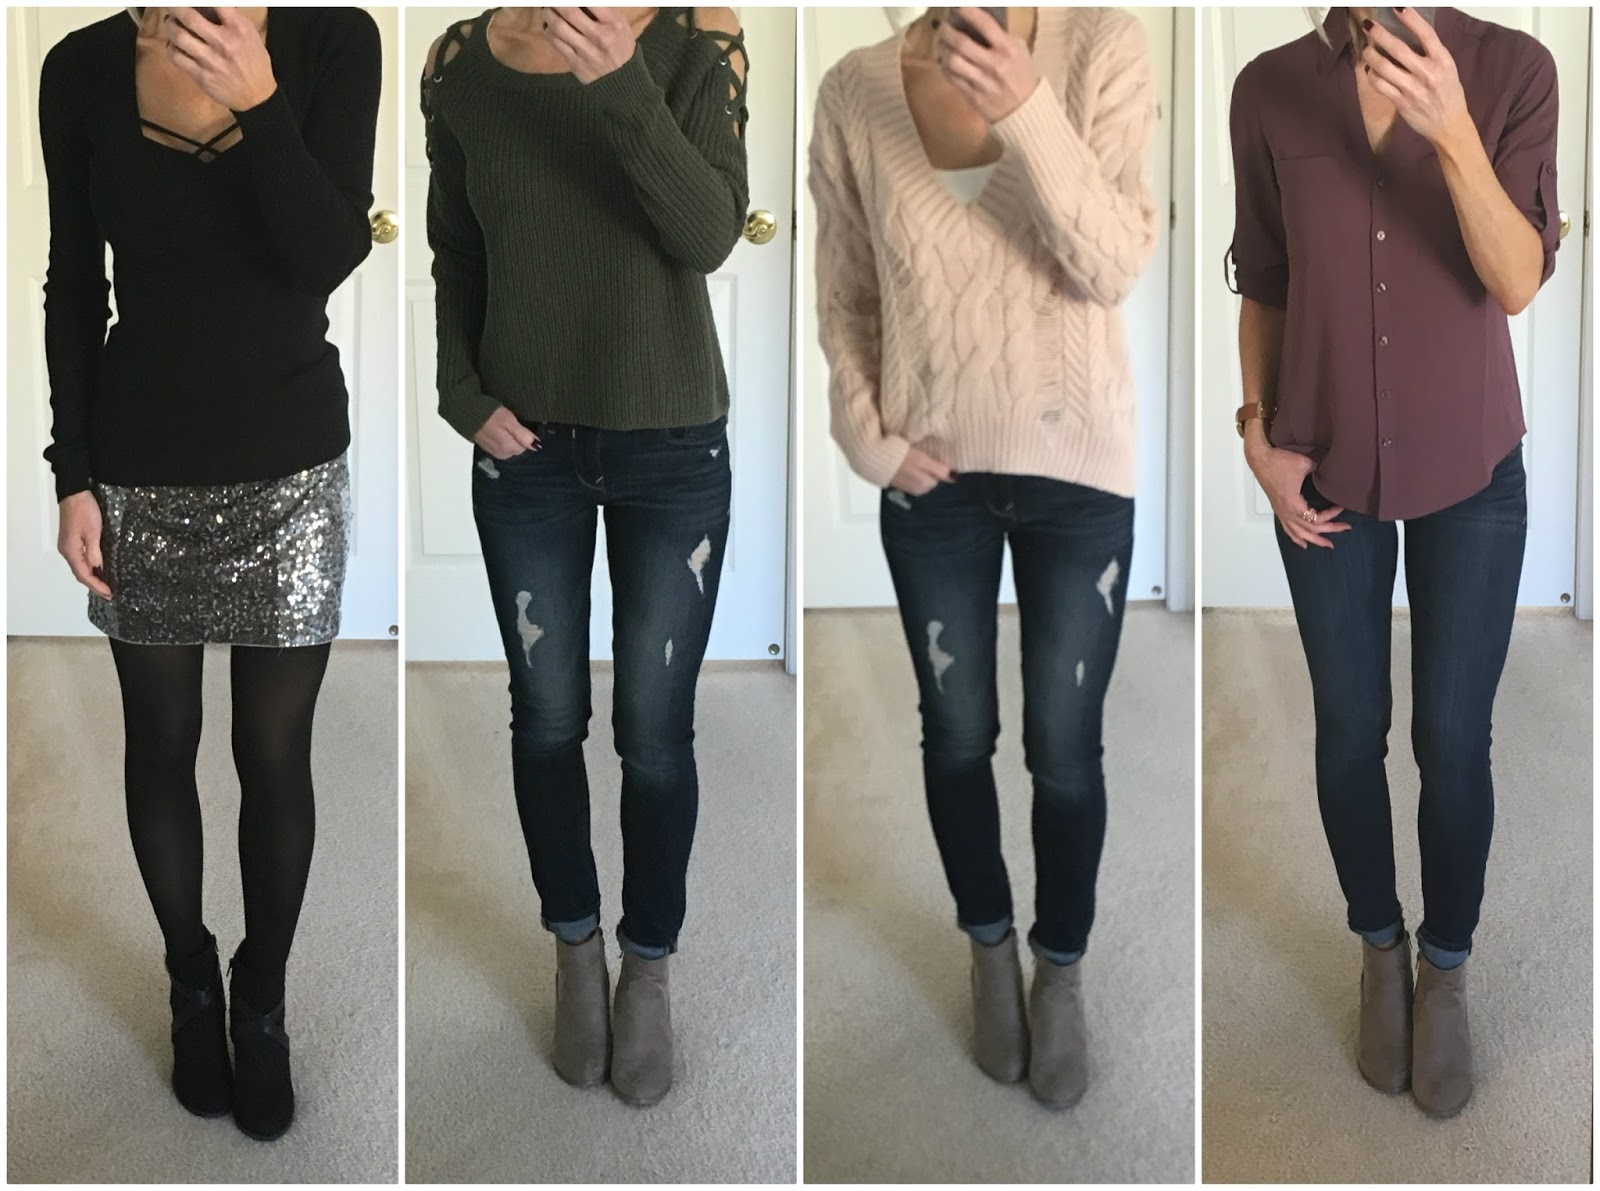 b18f7c32 1. Black Sweater | 2. Olive Sweater | 3. Blush Sweater | 4. Slim Fit  Portofino (Details for each outfit below)